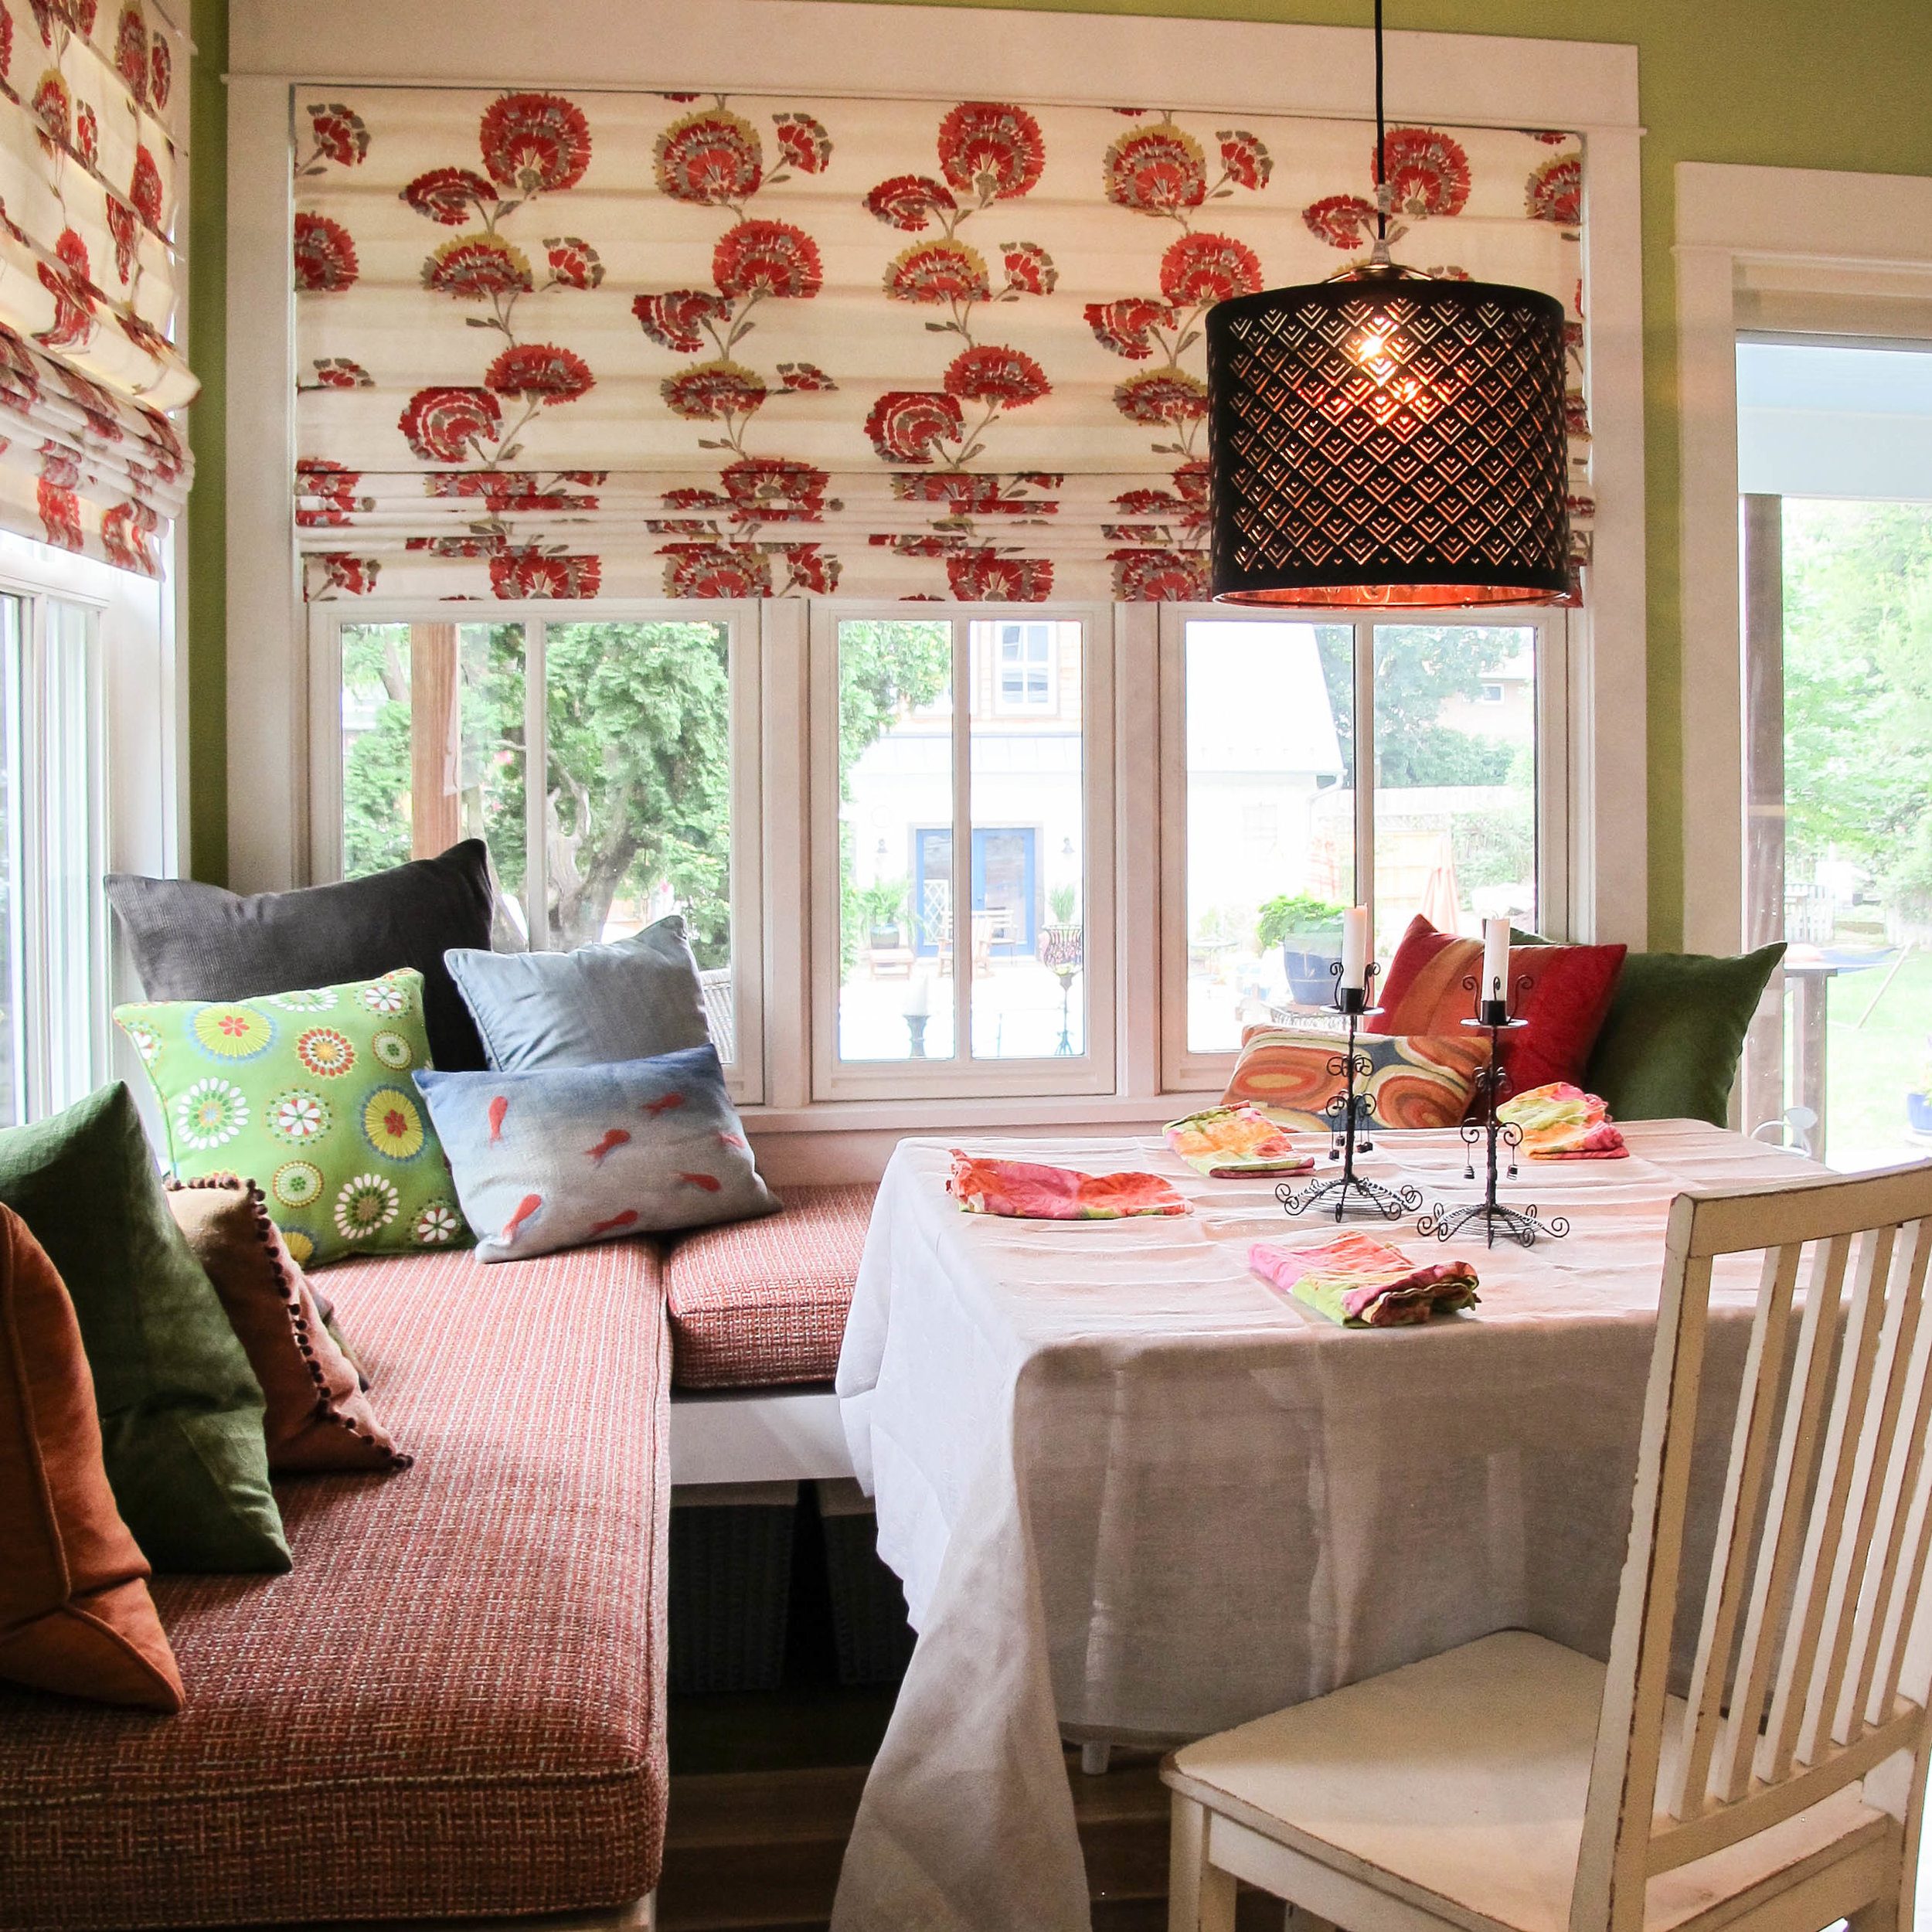 Thoughtful fabric selections and other small changes improved the overall mood in this breakfast nook.